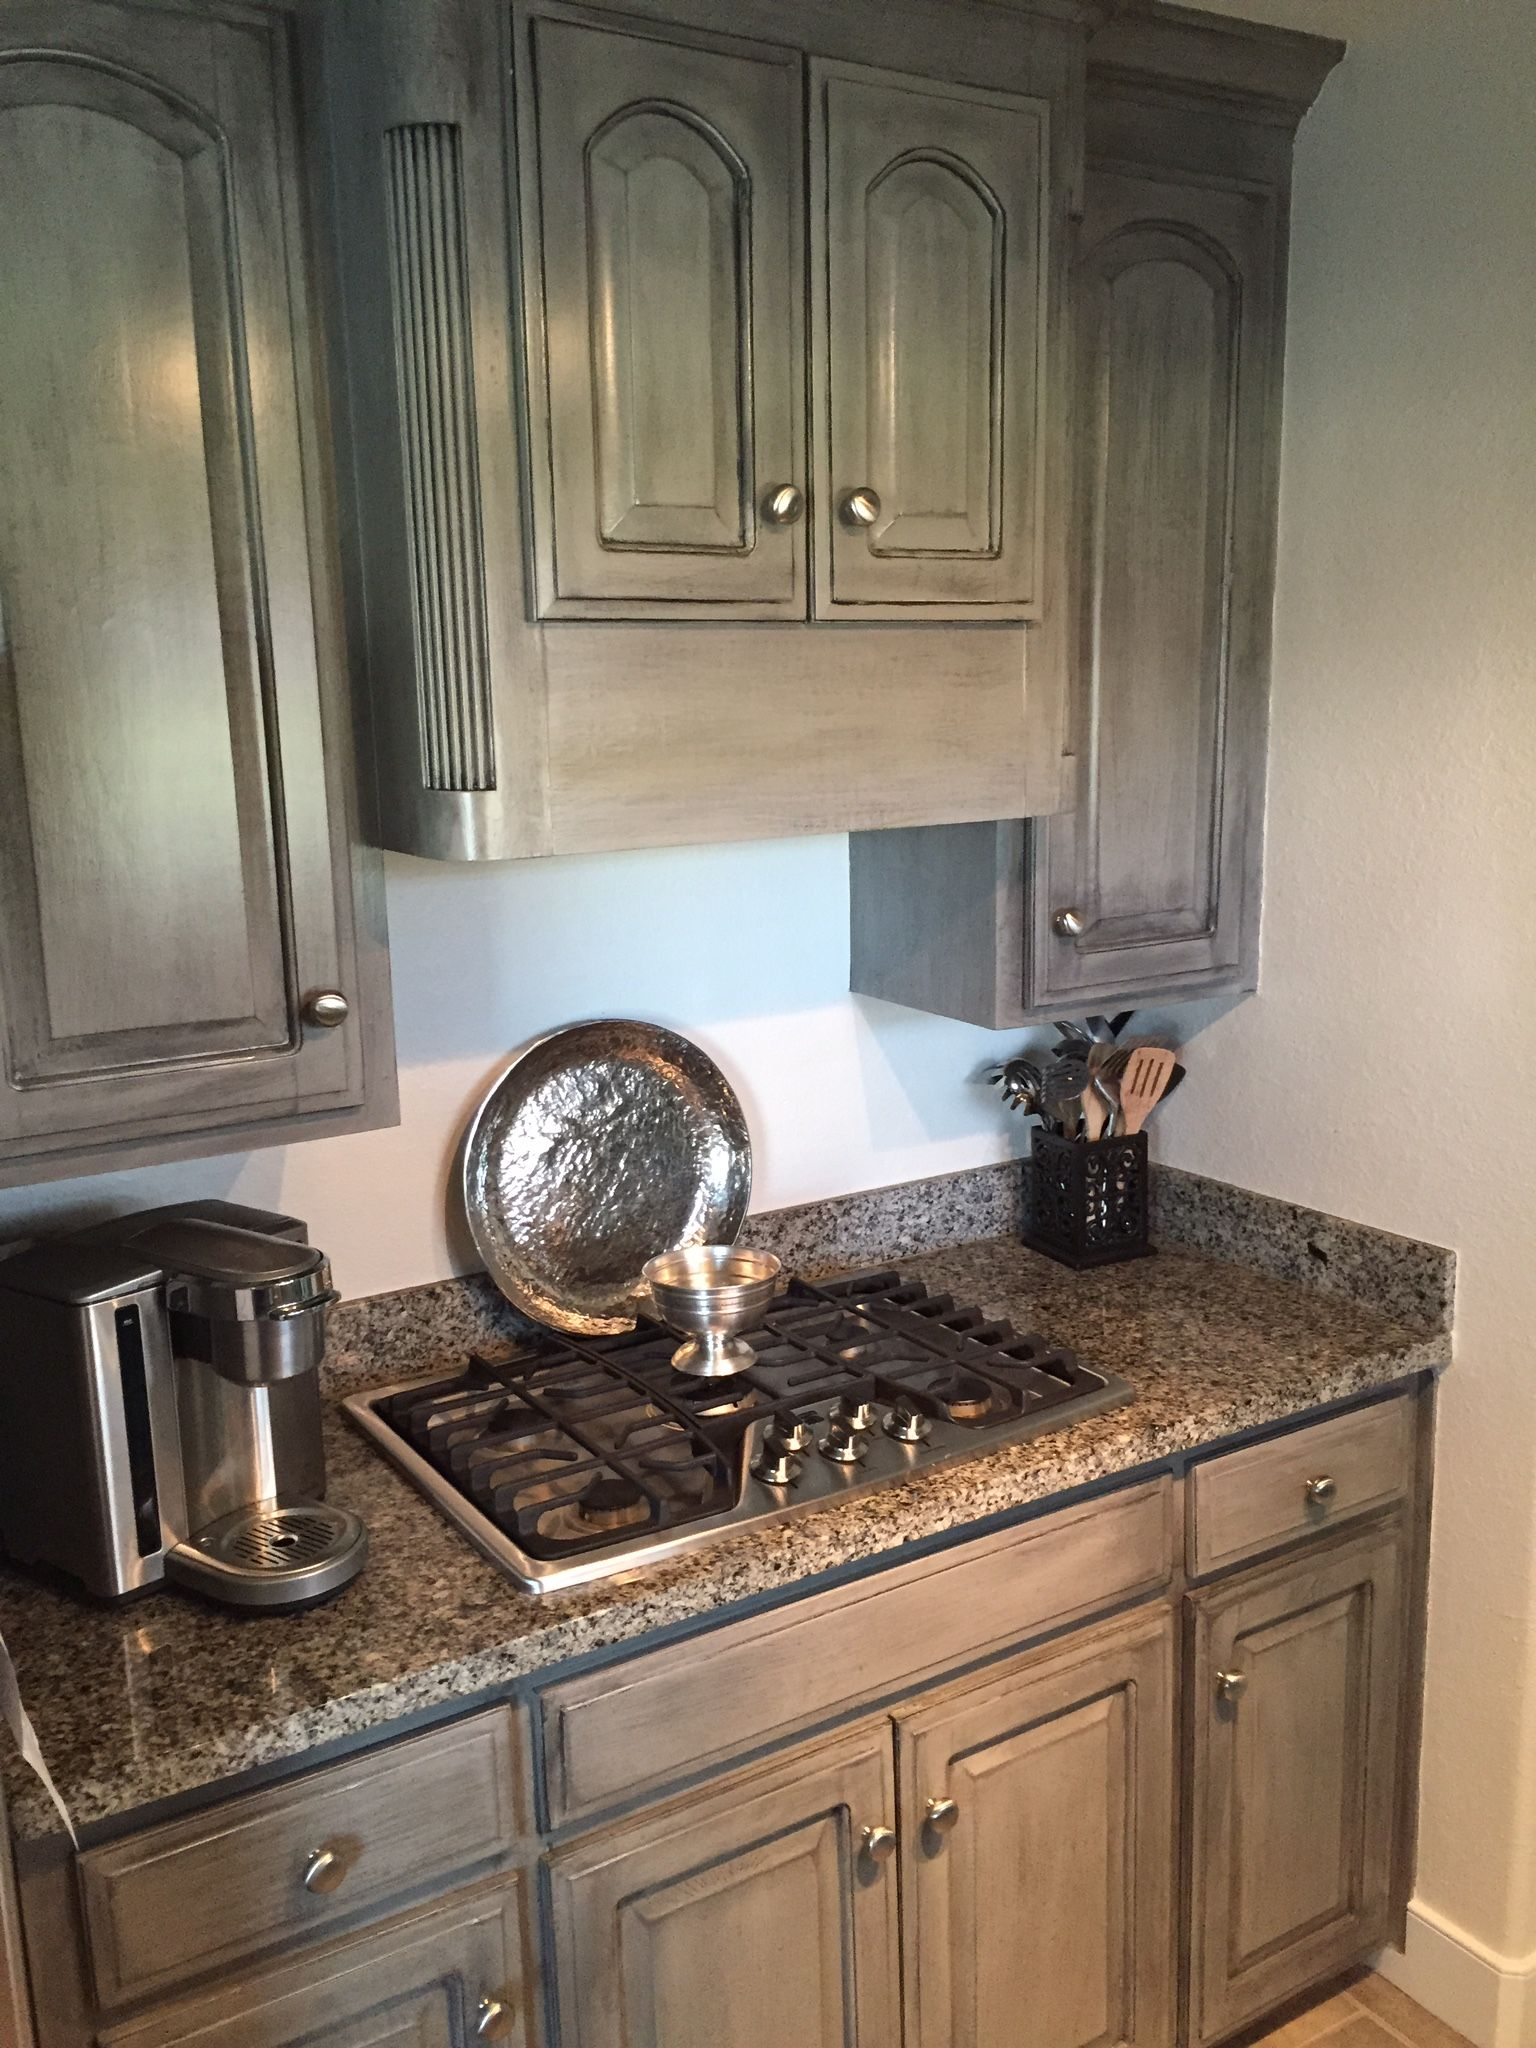 Pewter Cast Sherwin Williams With Black Glaze Sherwin Williams Cabinet Paint Glazed Kitchen Cabinets Sherwin Williams Stain Colors